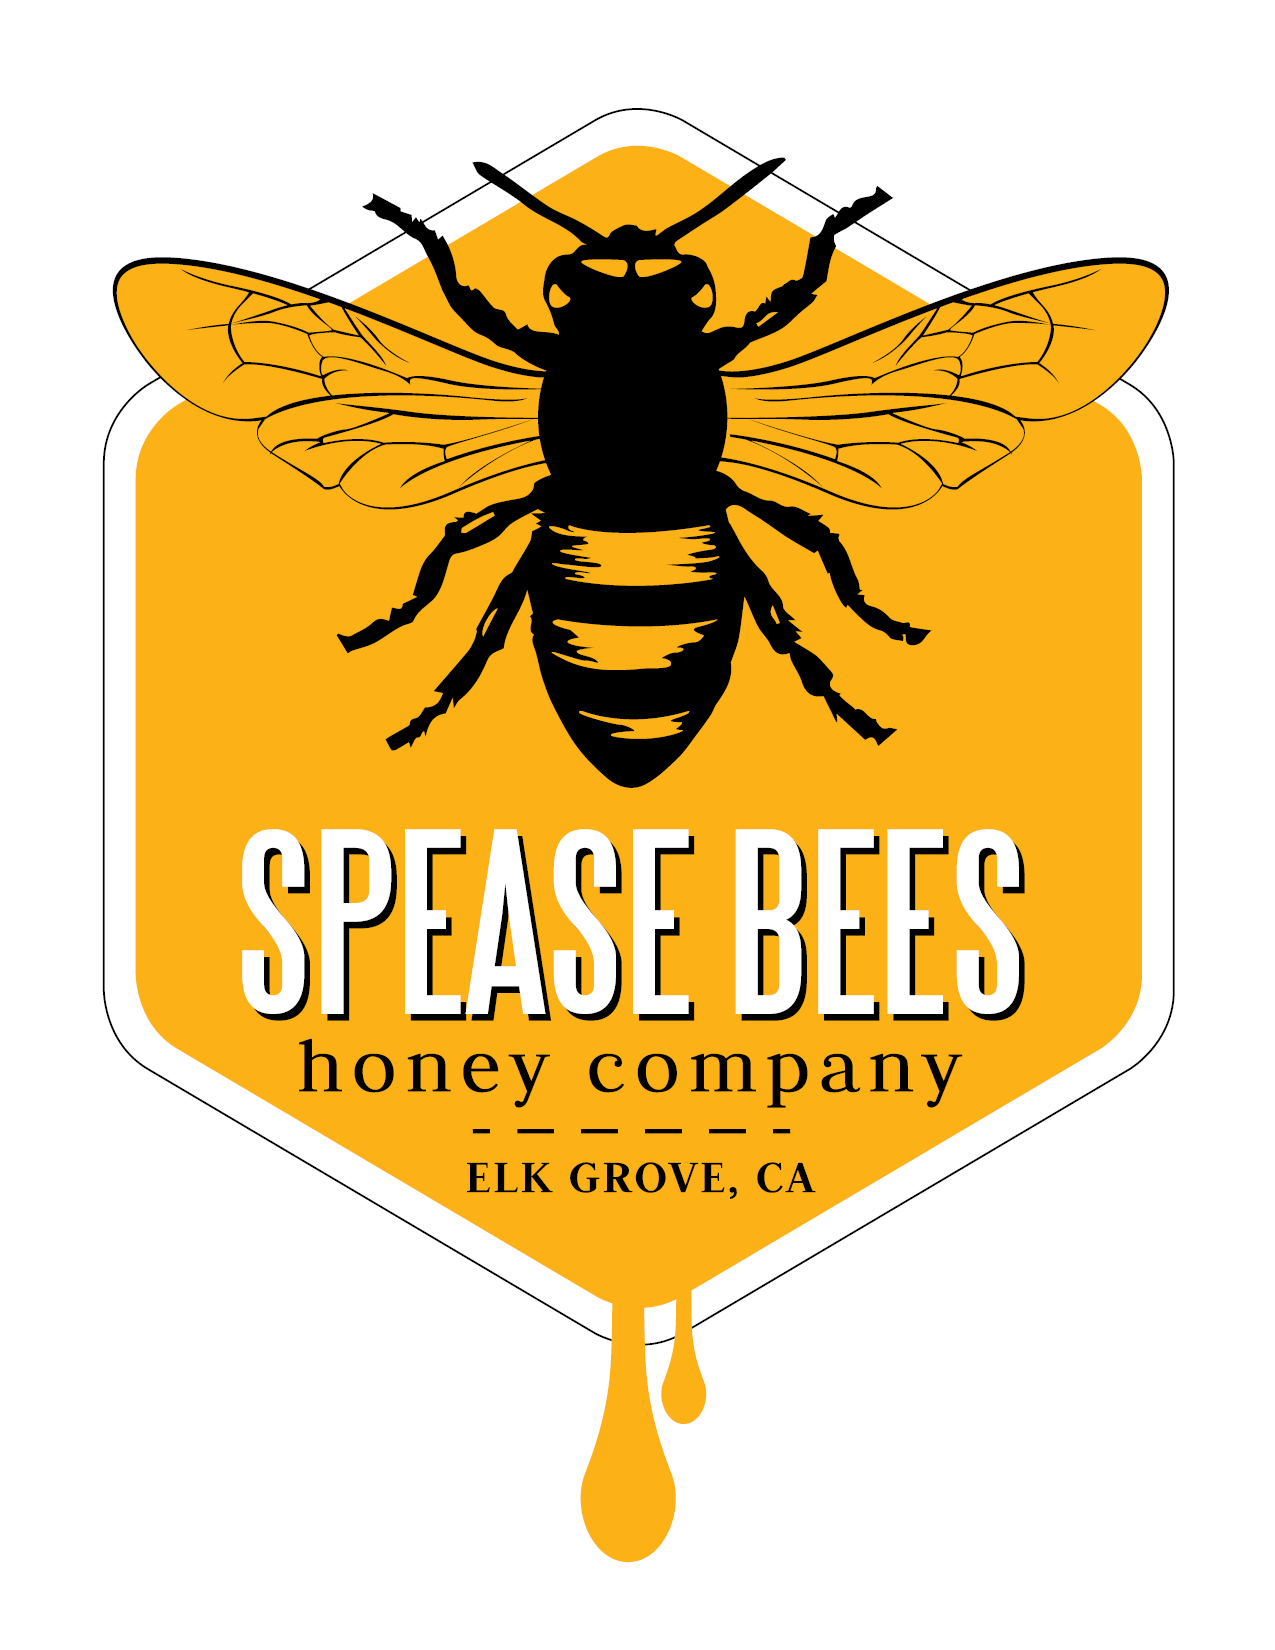 Spease Bees